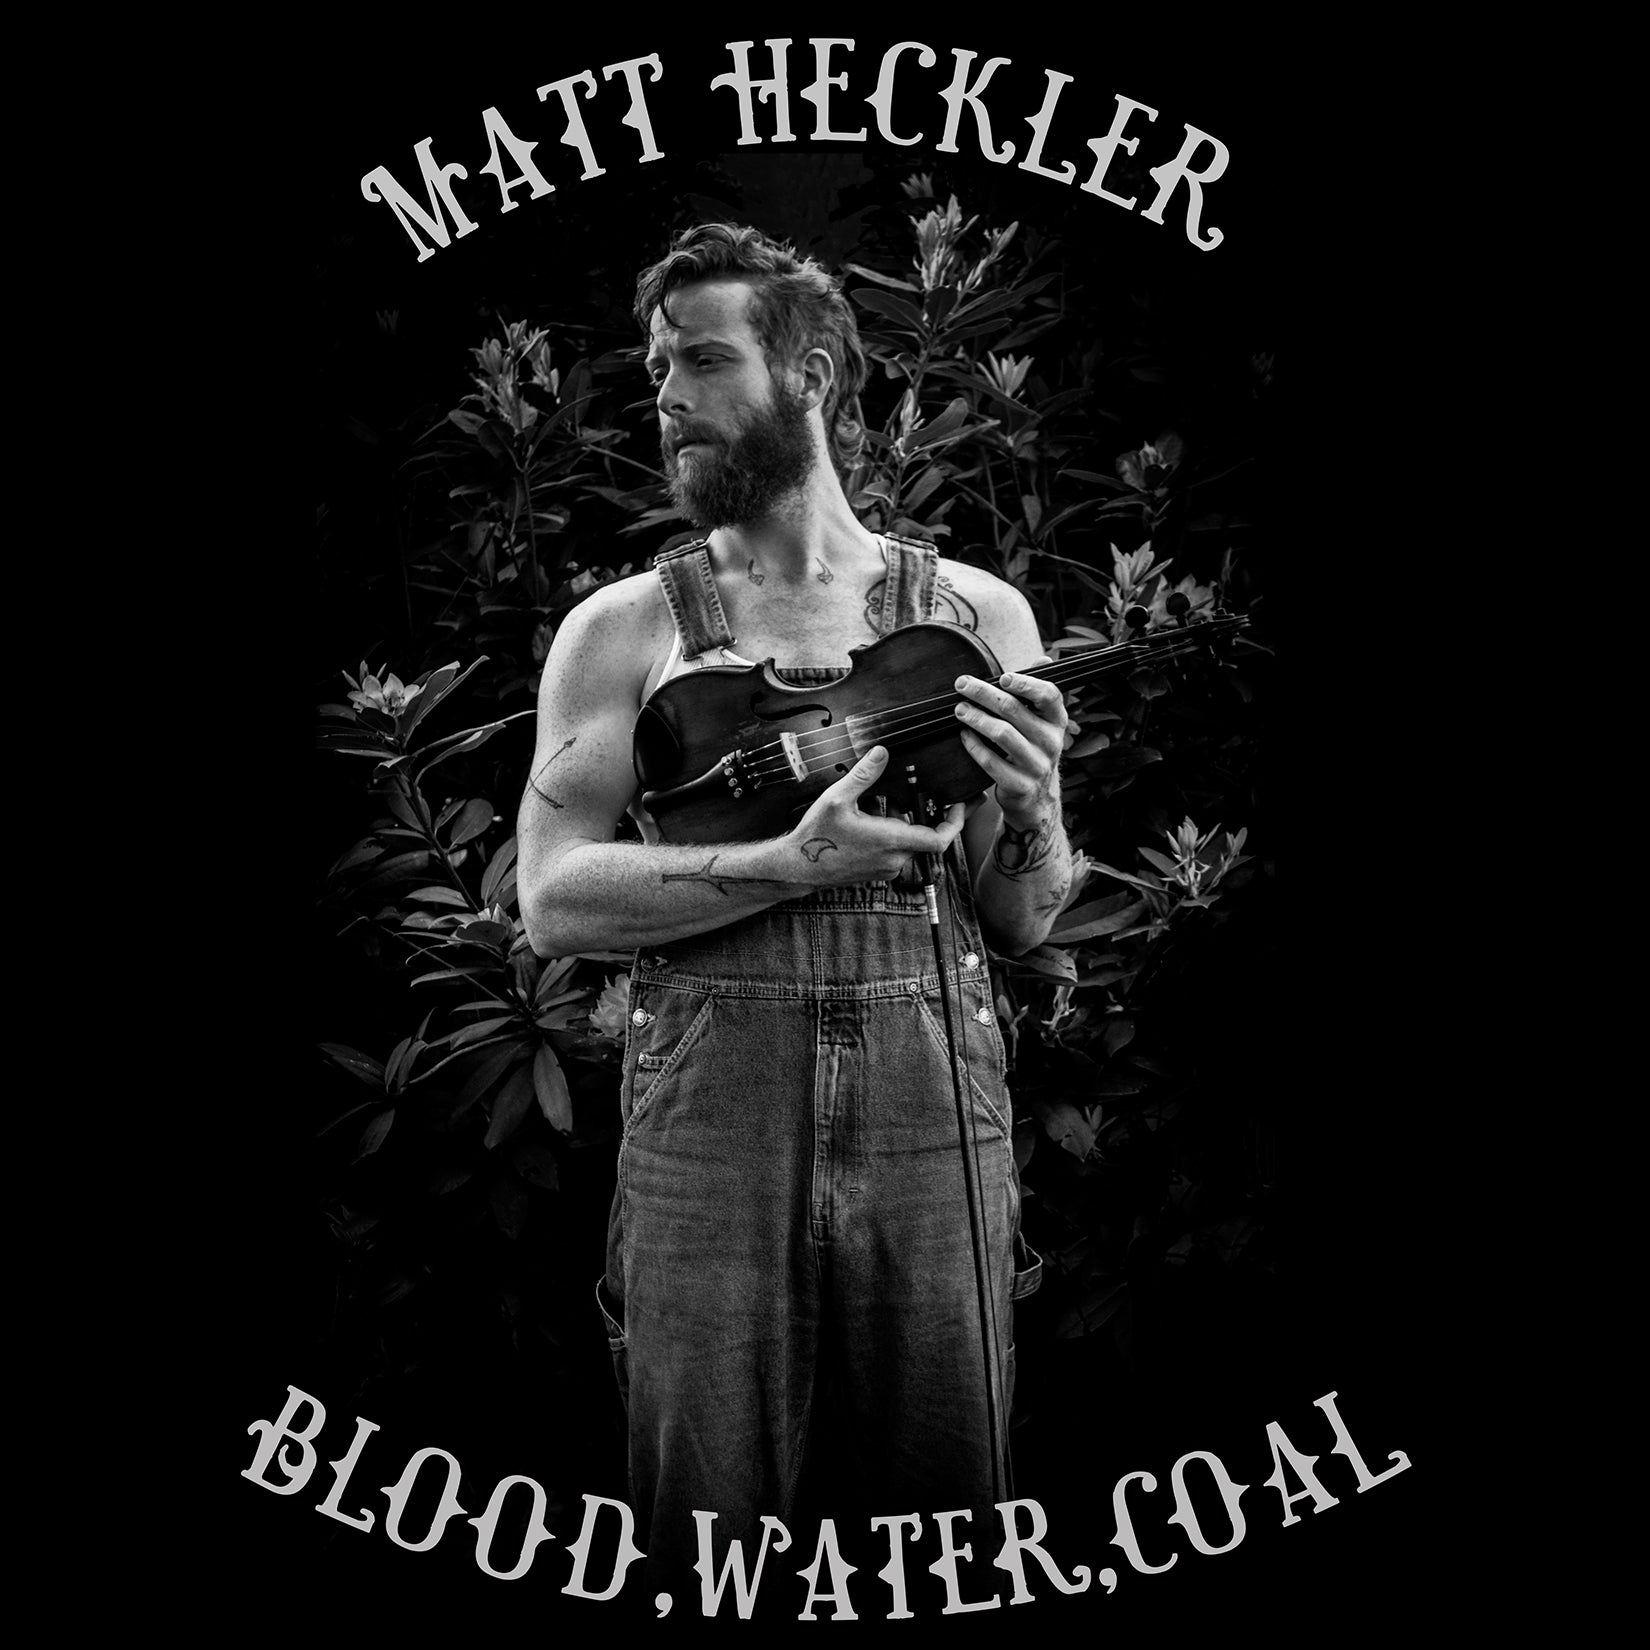 ALBUM: Matt Heckler - Blood, Water, Coal (CD/Digital)